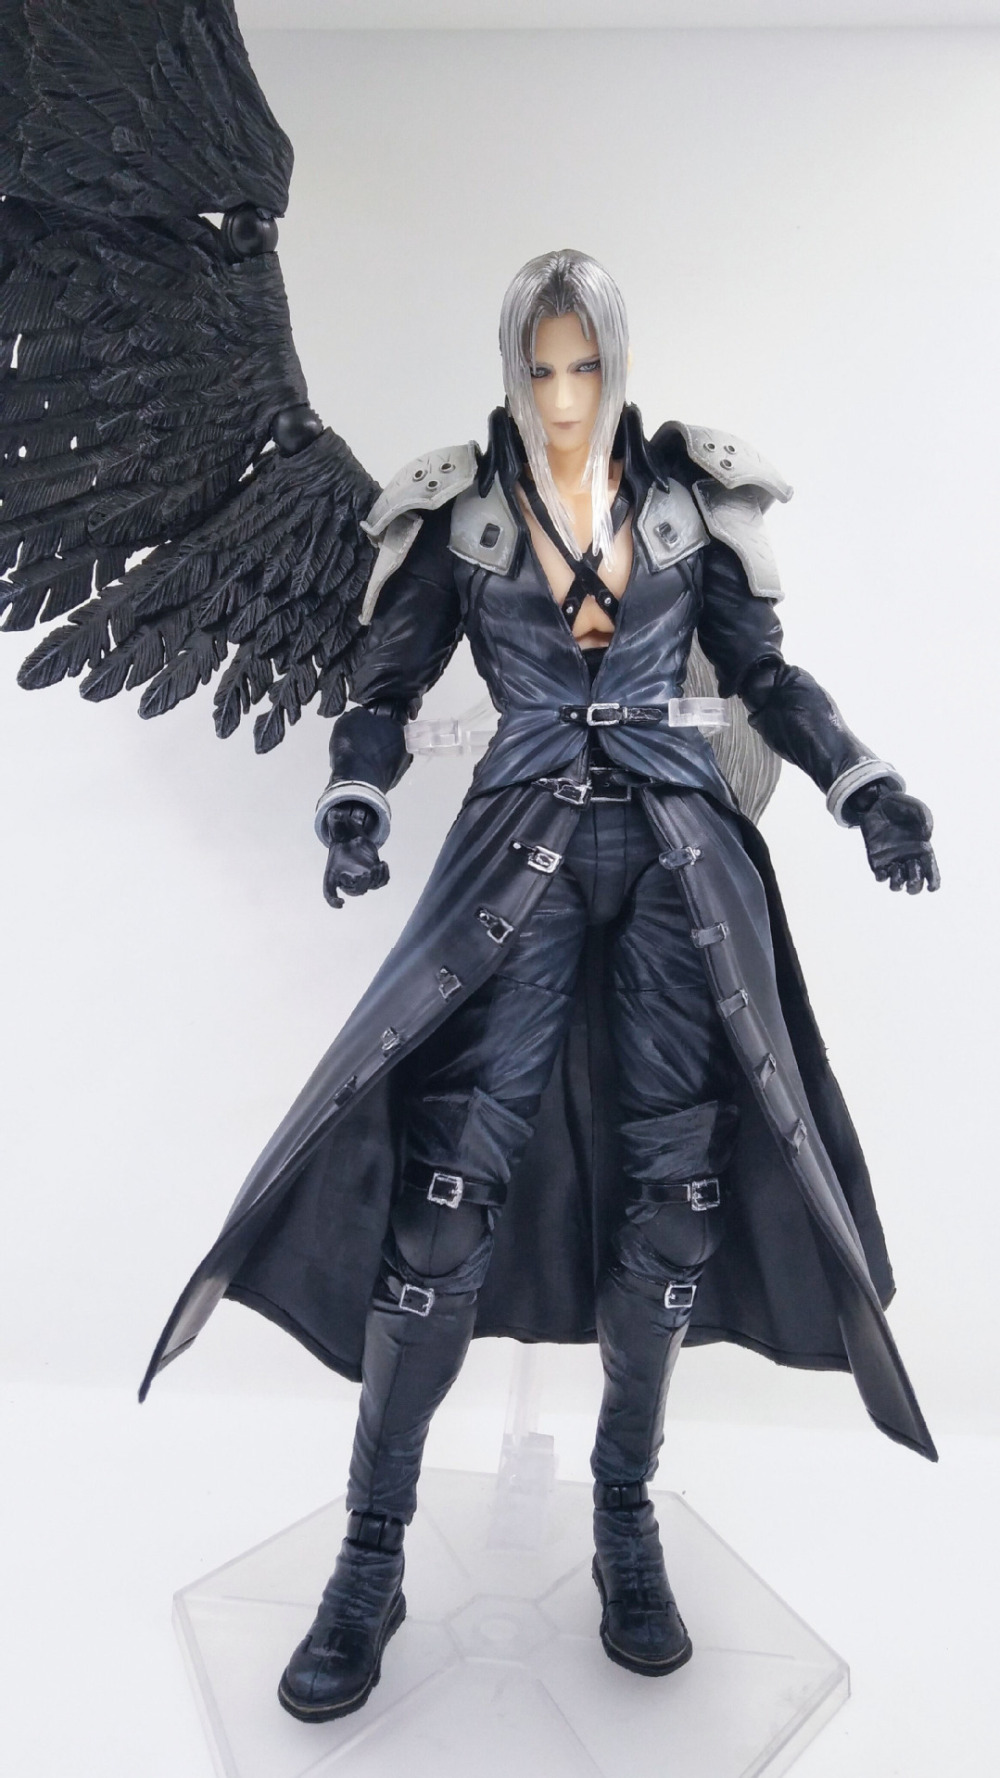 Anime Figure 25CM Final Fantasy VII 7 Sephiroth PVC Action Figure Collectible Model Toys Doll with box моноблок lenovo ideacentre 300 23isu 23 full hd i5 6200u 8gb 1tb 7 2k gf920a 2gb dvdrw free dos gbiteth wifi bt клавиатура мышь cam черный 1920x108